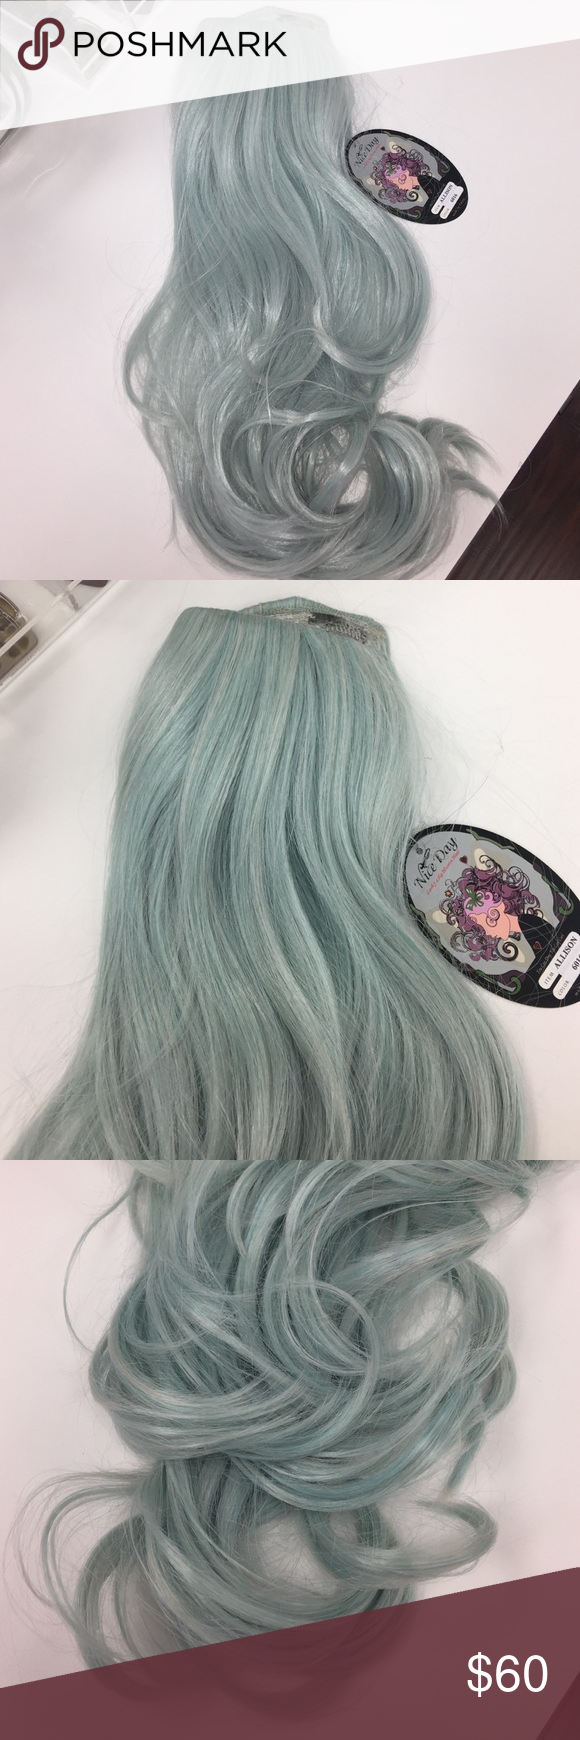 Mint Green Full Clip In Hair Extension Boutique My Posh Picks